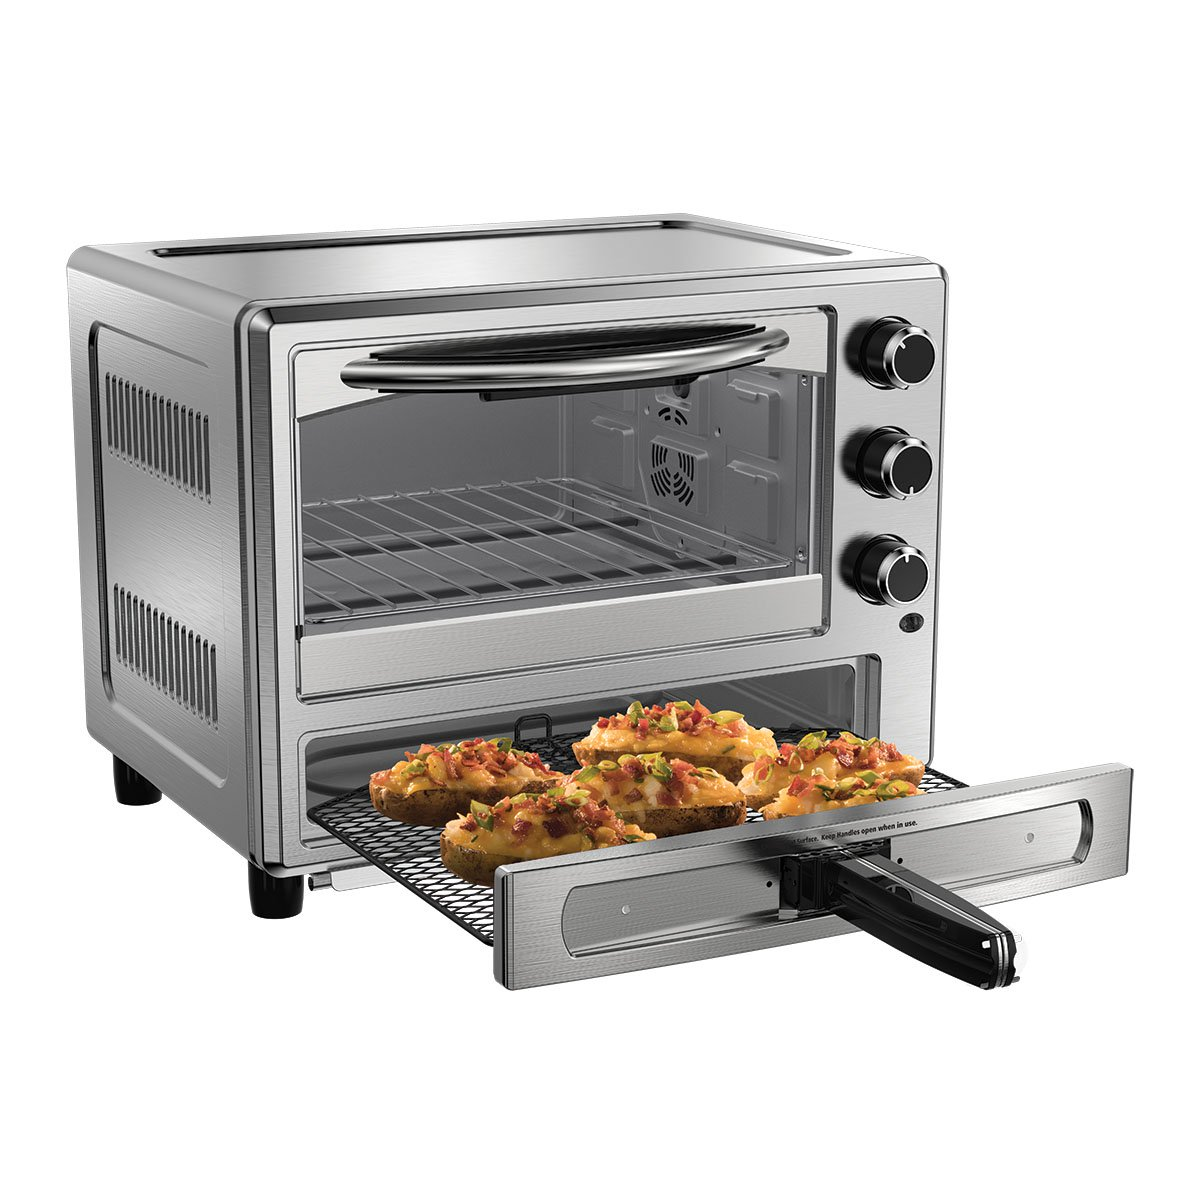 Best Convection Oven Reviews 2018: Countertop Models Rated